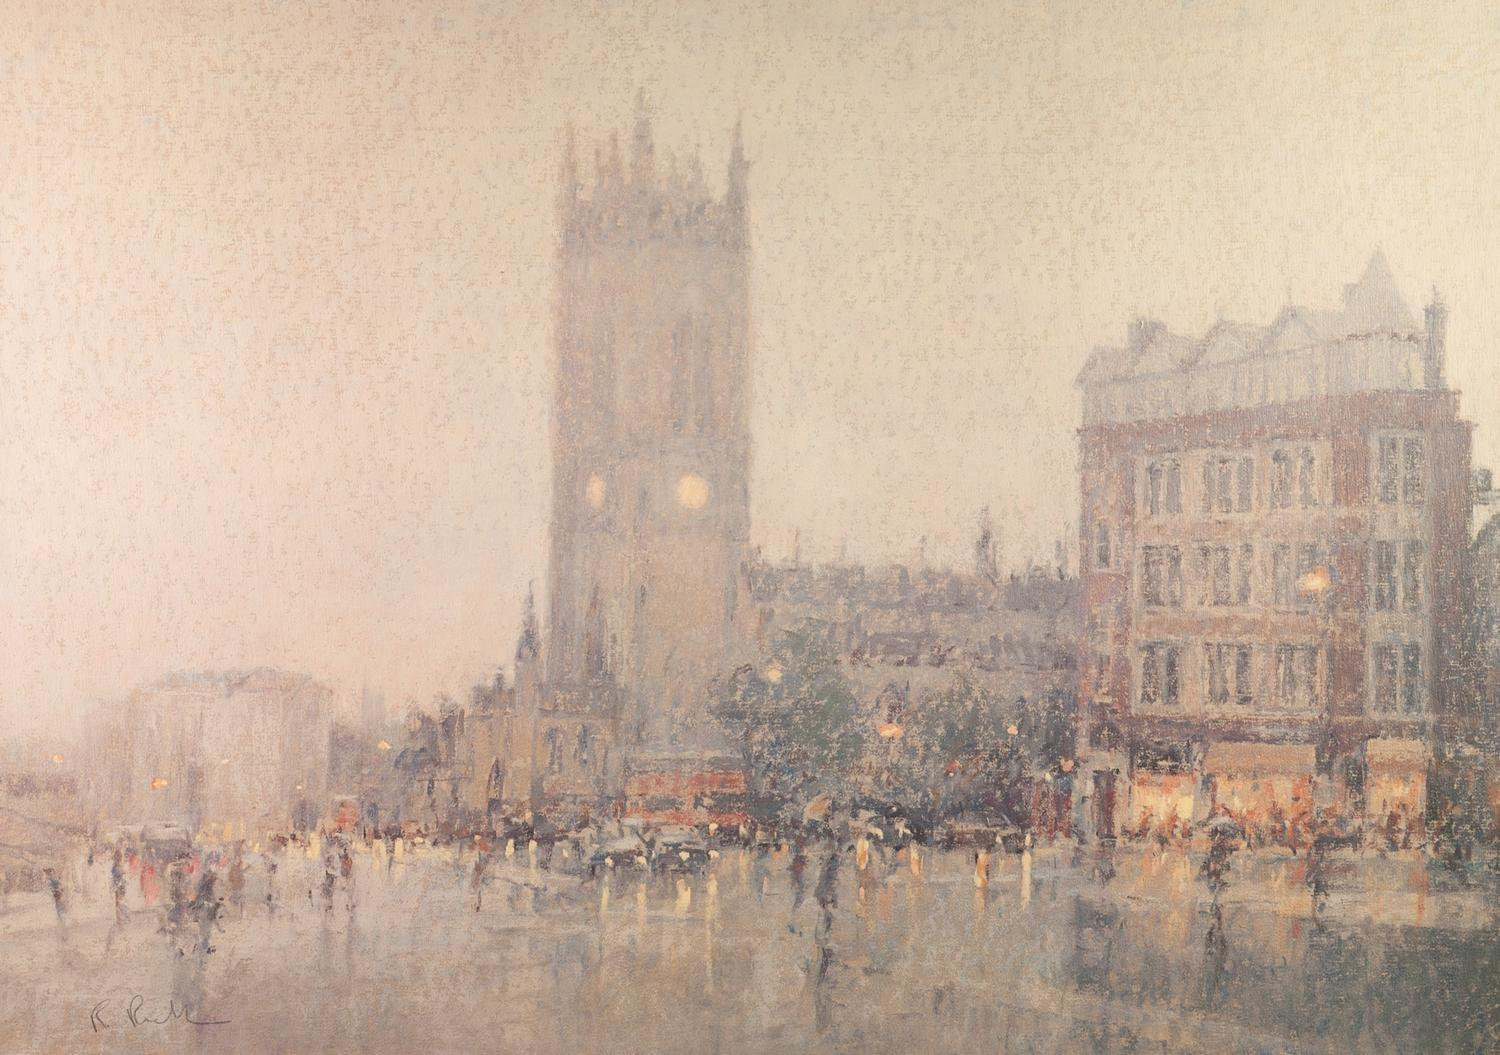 Lot 461 - BOB RICHARDSON ARTIST SIGNED LIMITED EDITION COLOUR PRINT Deansgate, Manchester, with a view of